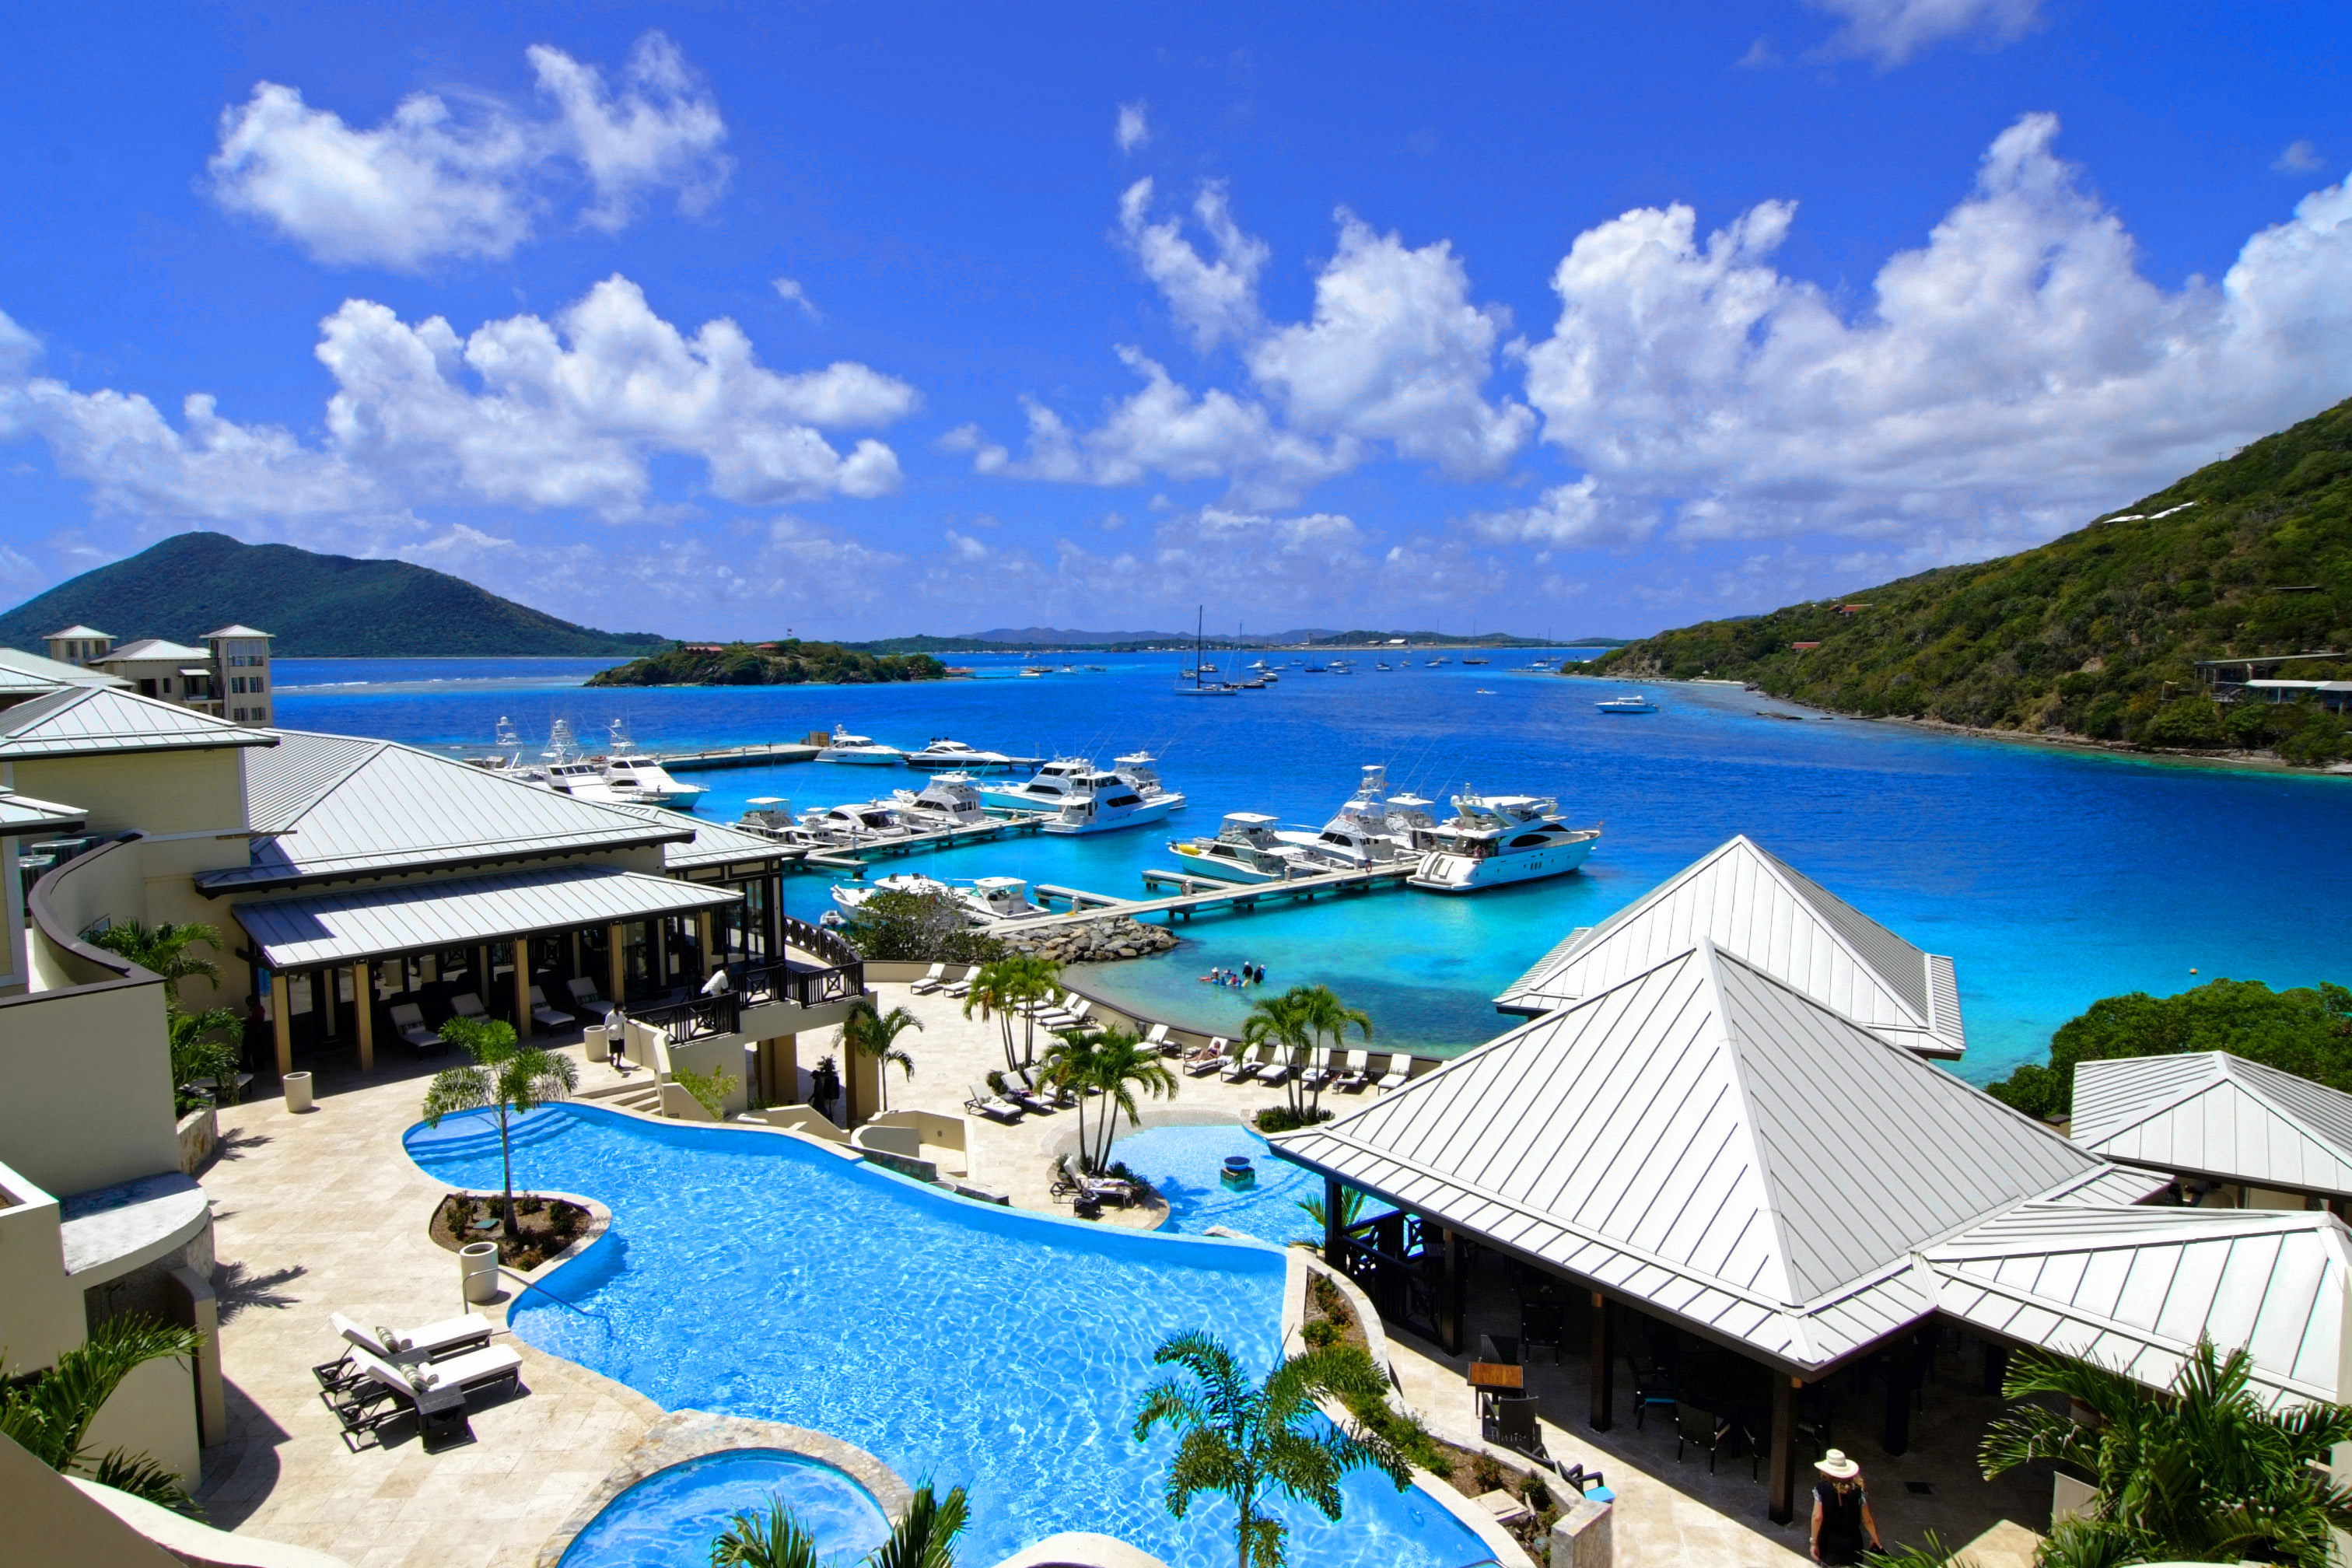 Virgin Islands The Exotic Beaches